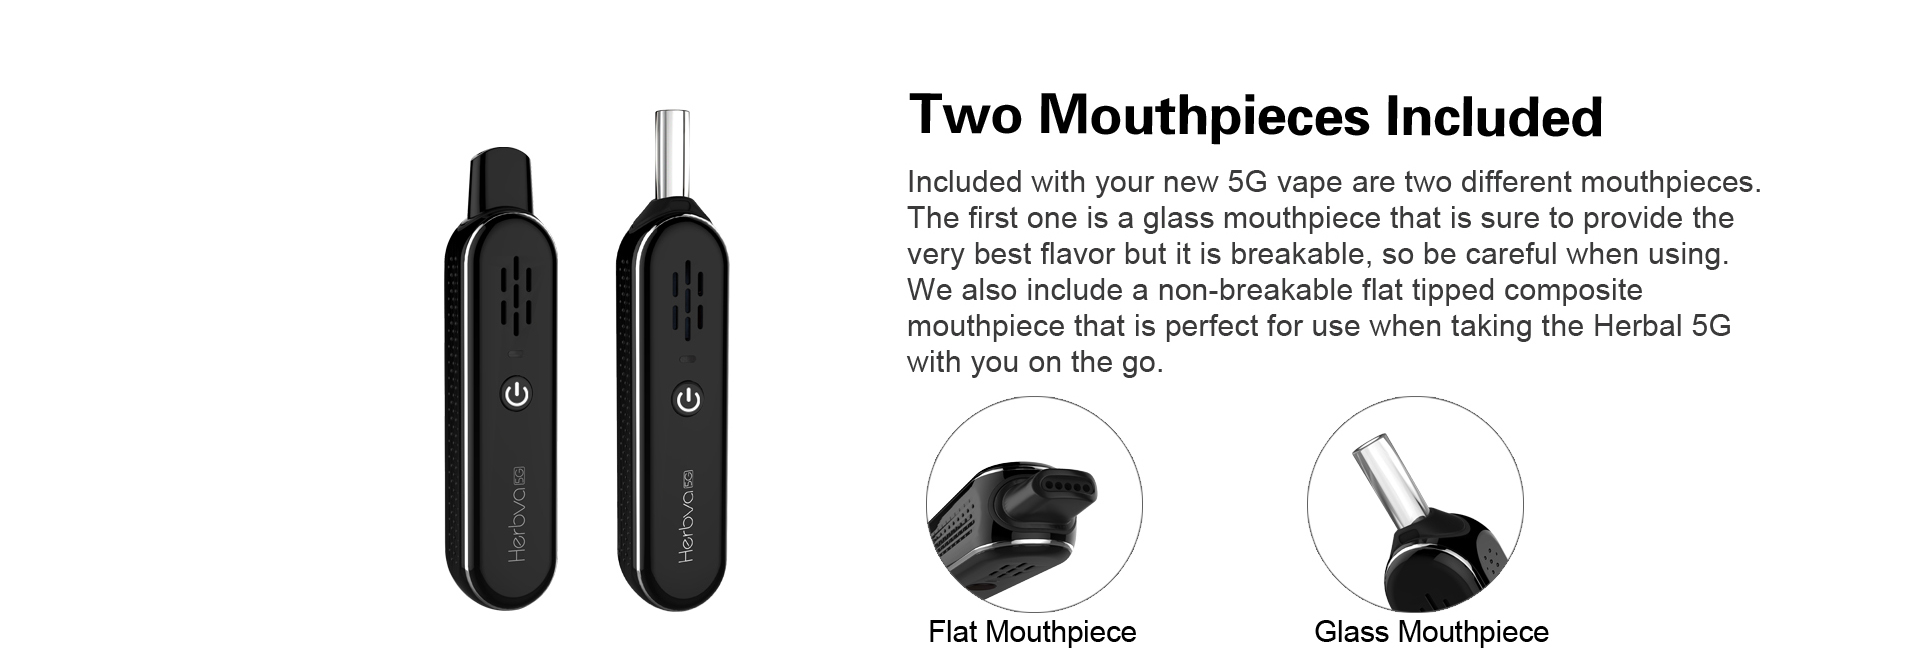 G Vape CBD Herb 2 Mouthpieces Included